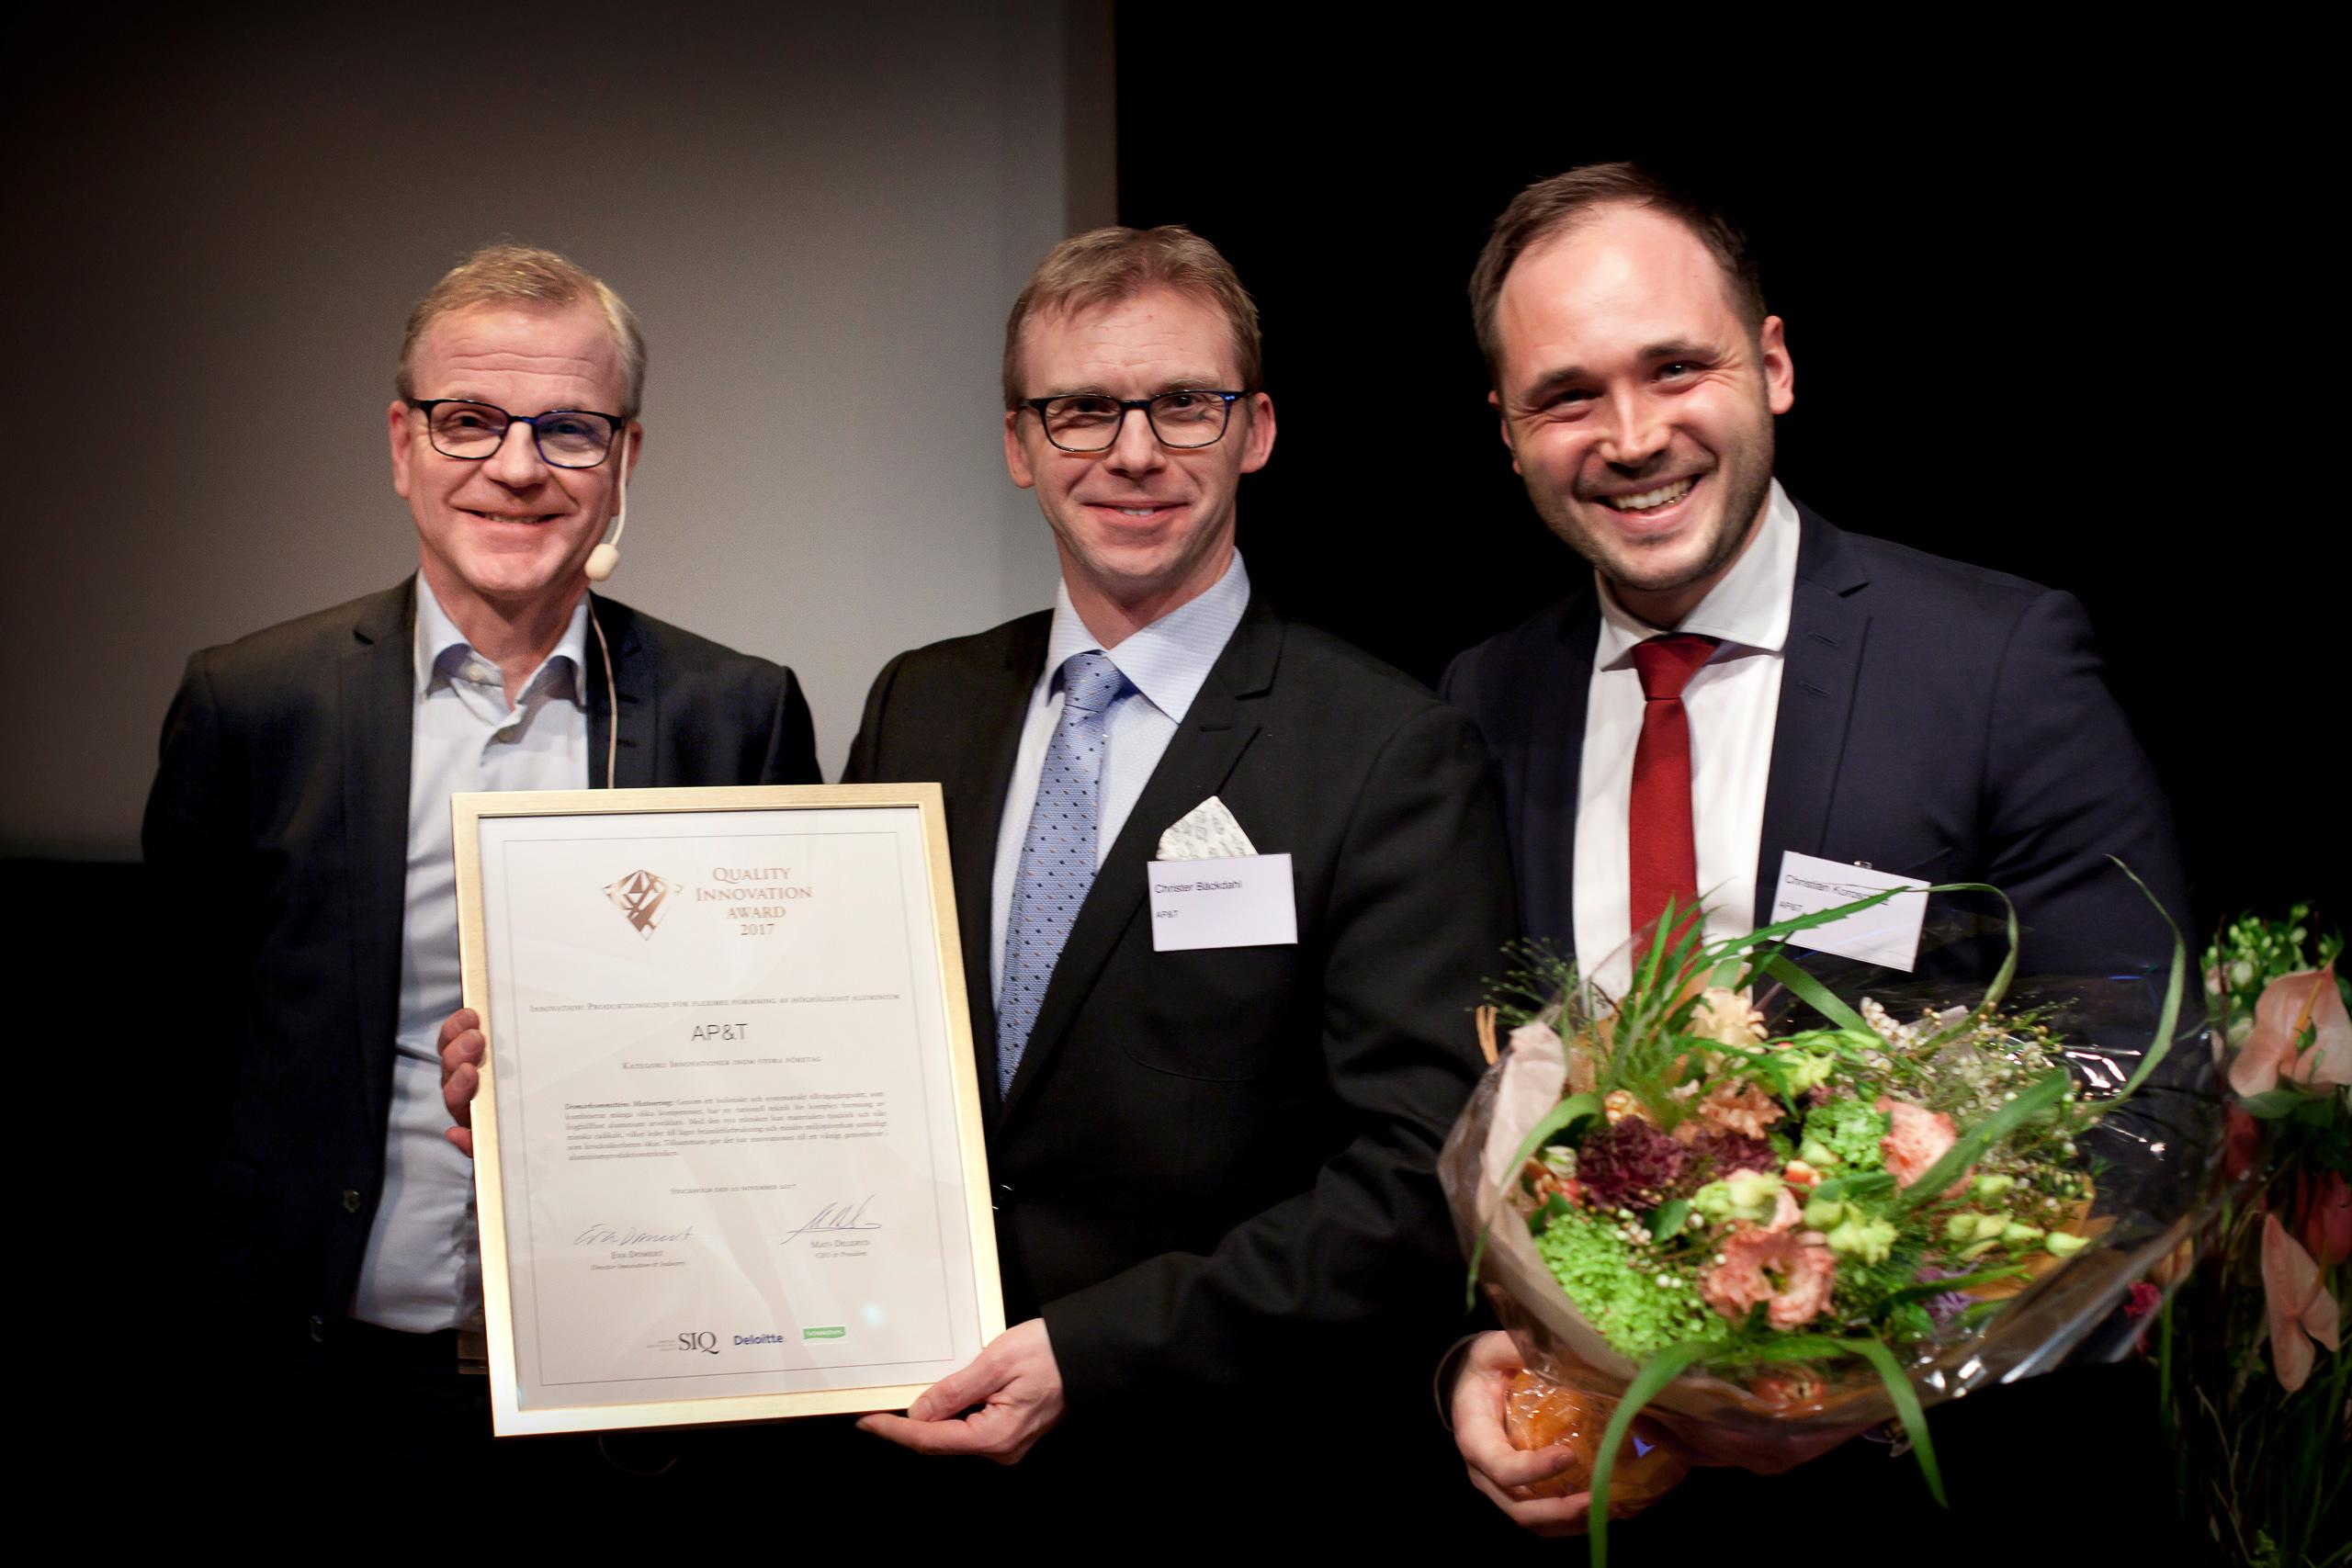 Sr. Director Operational Development and Quality Åke Ljungdahl of Volvo Car Corporation handed out the award. AP&T was represented by CTO, Product Development Christer Bäckdahl and CTO, Technology Development Dr. Christian Koroschetz. (Photograph: SIQ)